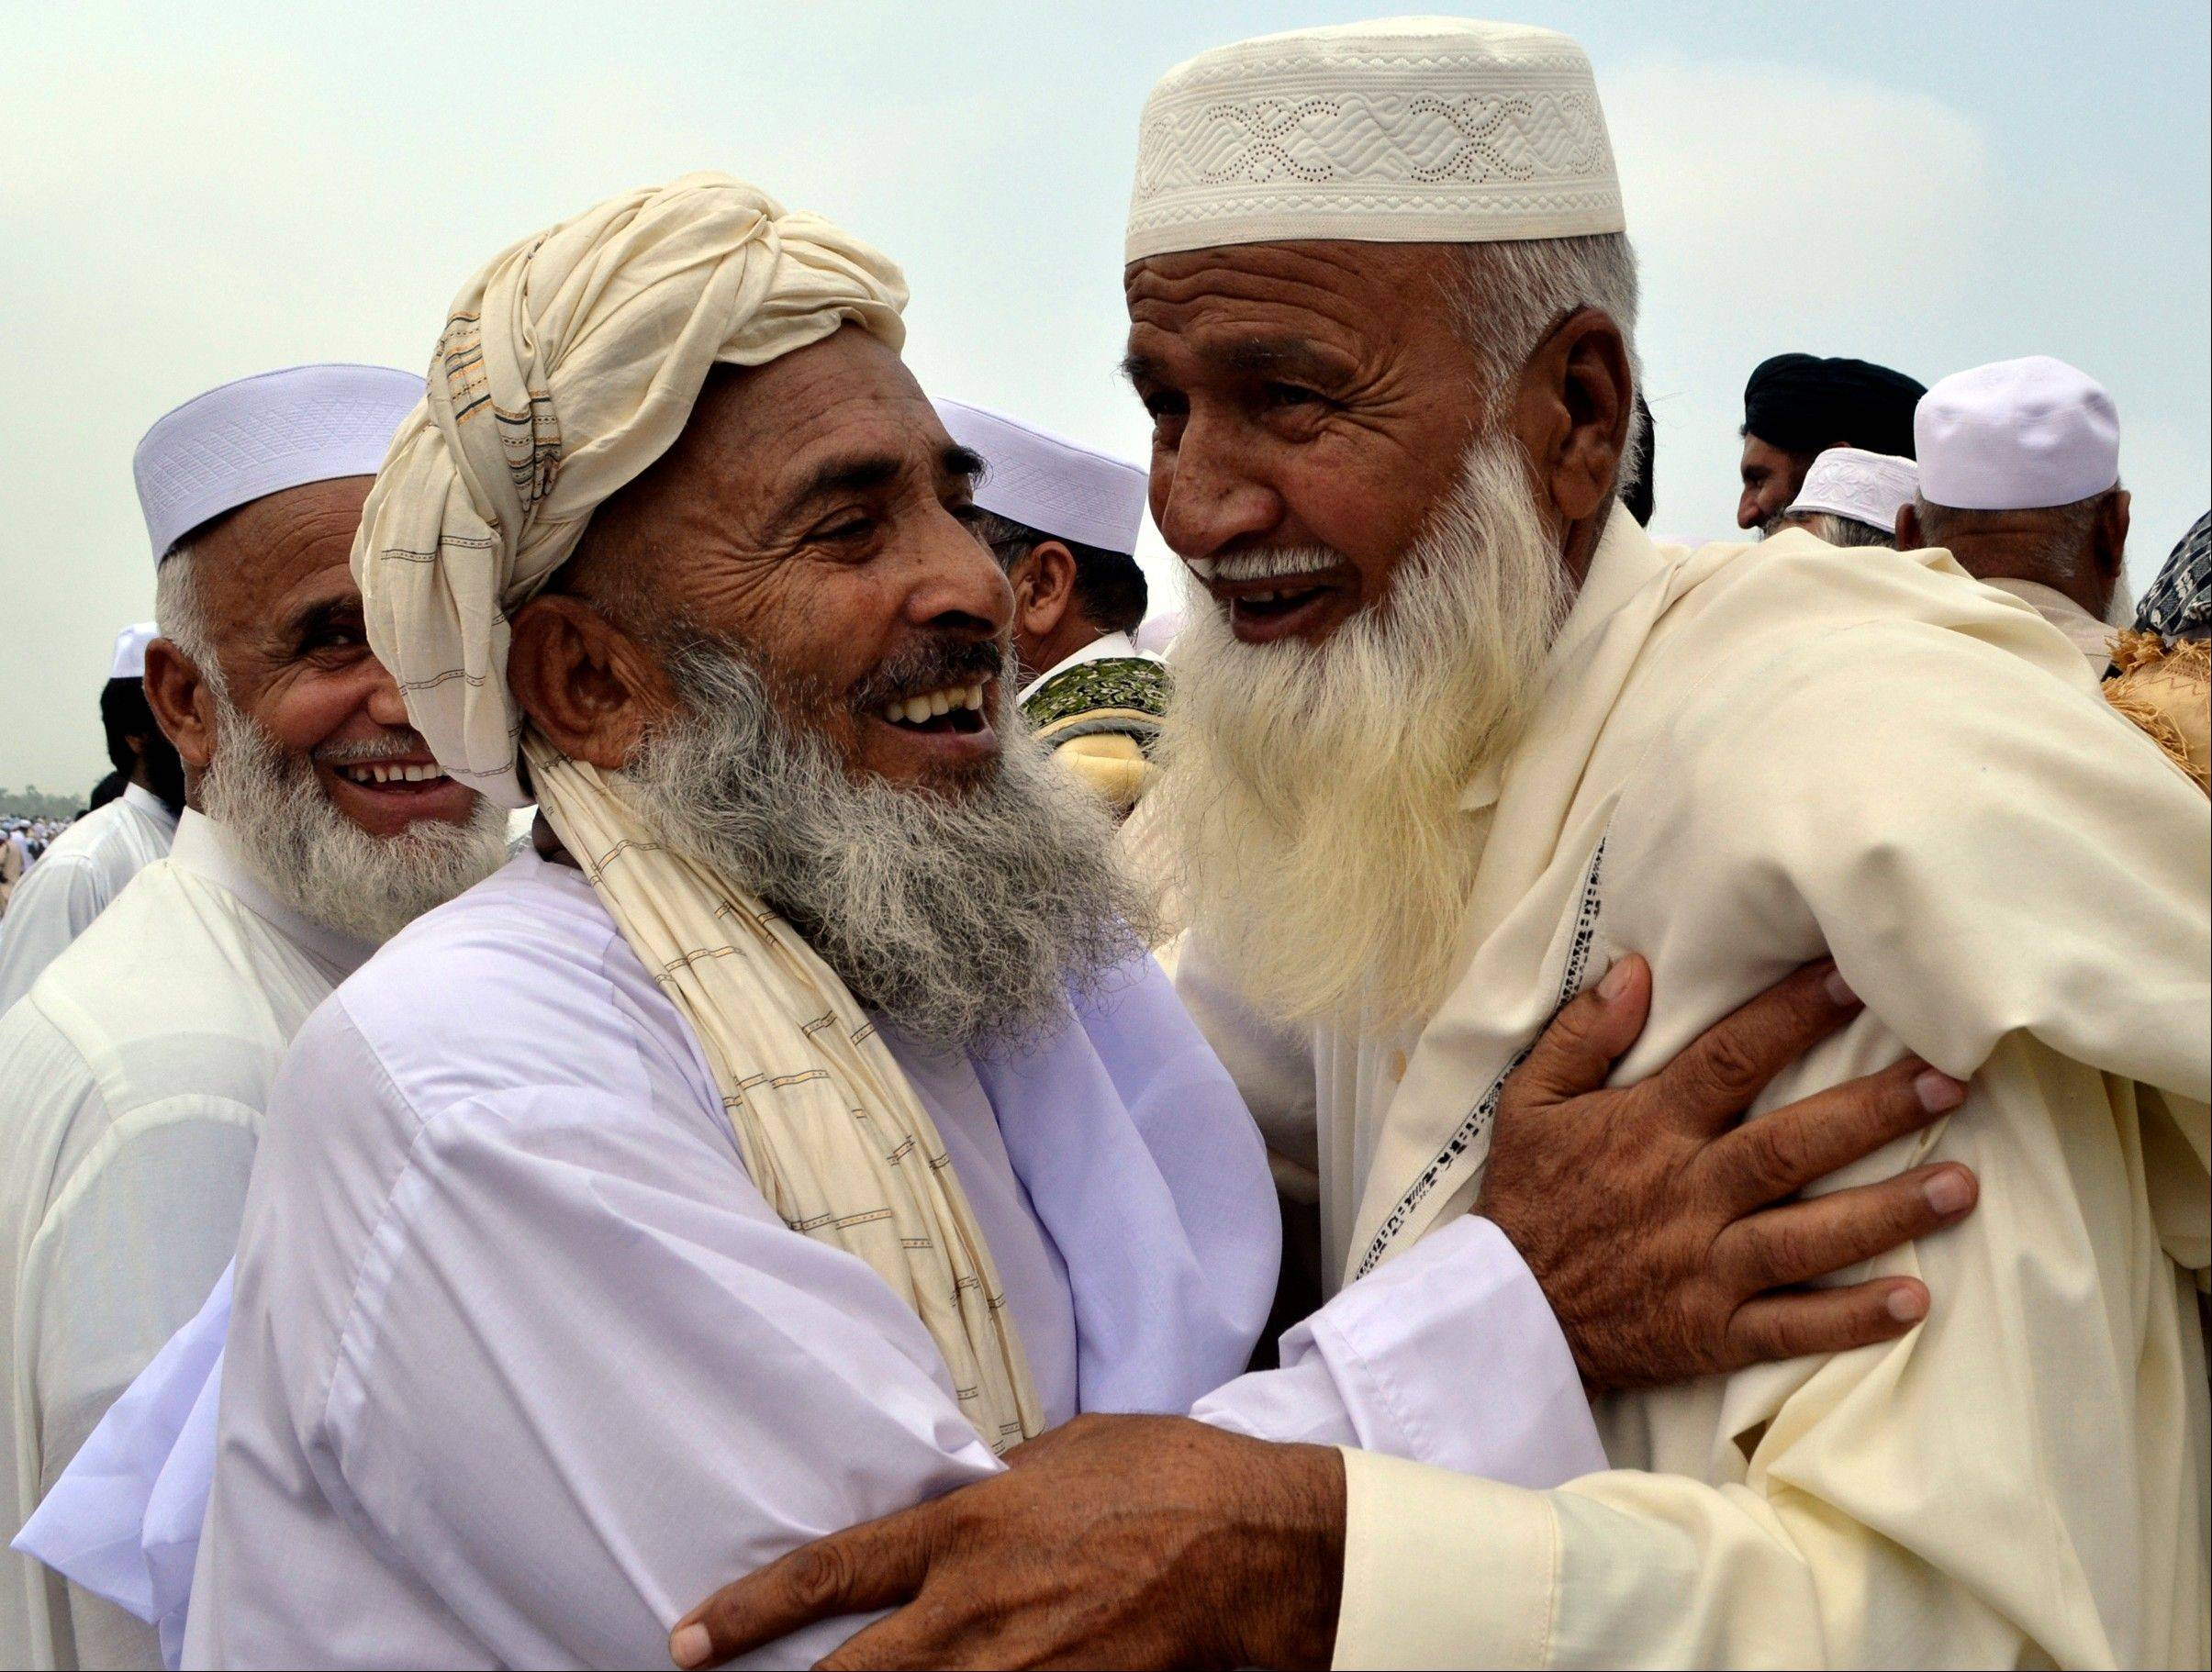 Afghan refugees living in Peshawar, Pakistan, greet each other during the Eid al-Fitr holiday that marks the end of the holy fasting month of Ramadan, Thursday, Aug. 8, 2013. Millions of Muslims began celebrating the end of Ramadan on Thursday with morning prayers.